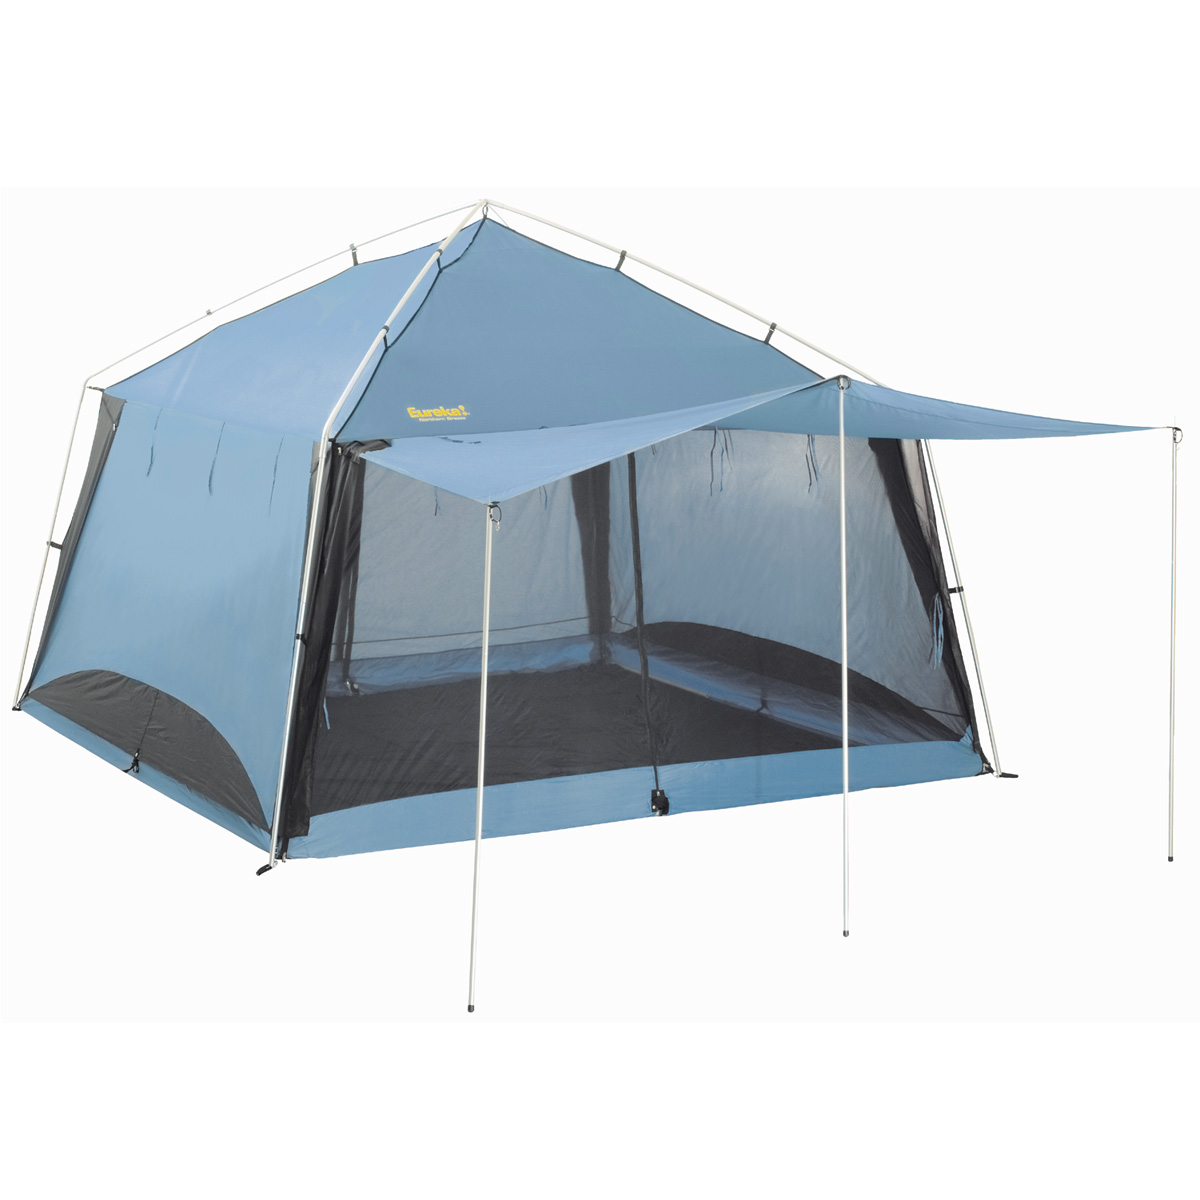 Northern Breeze Screen House  sc 1 st  Tents - Johnson Outdoors : screen house tents - memphite.com